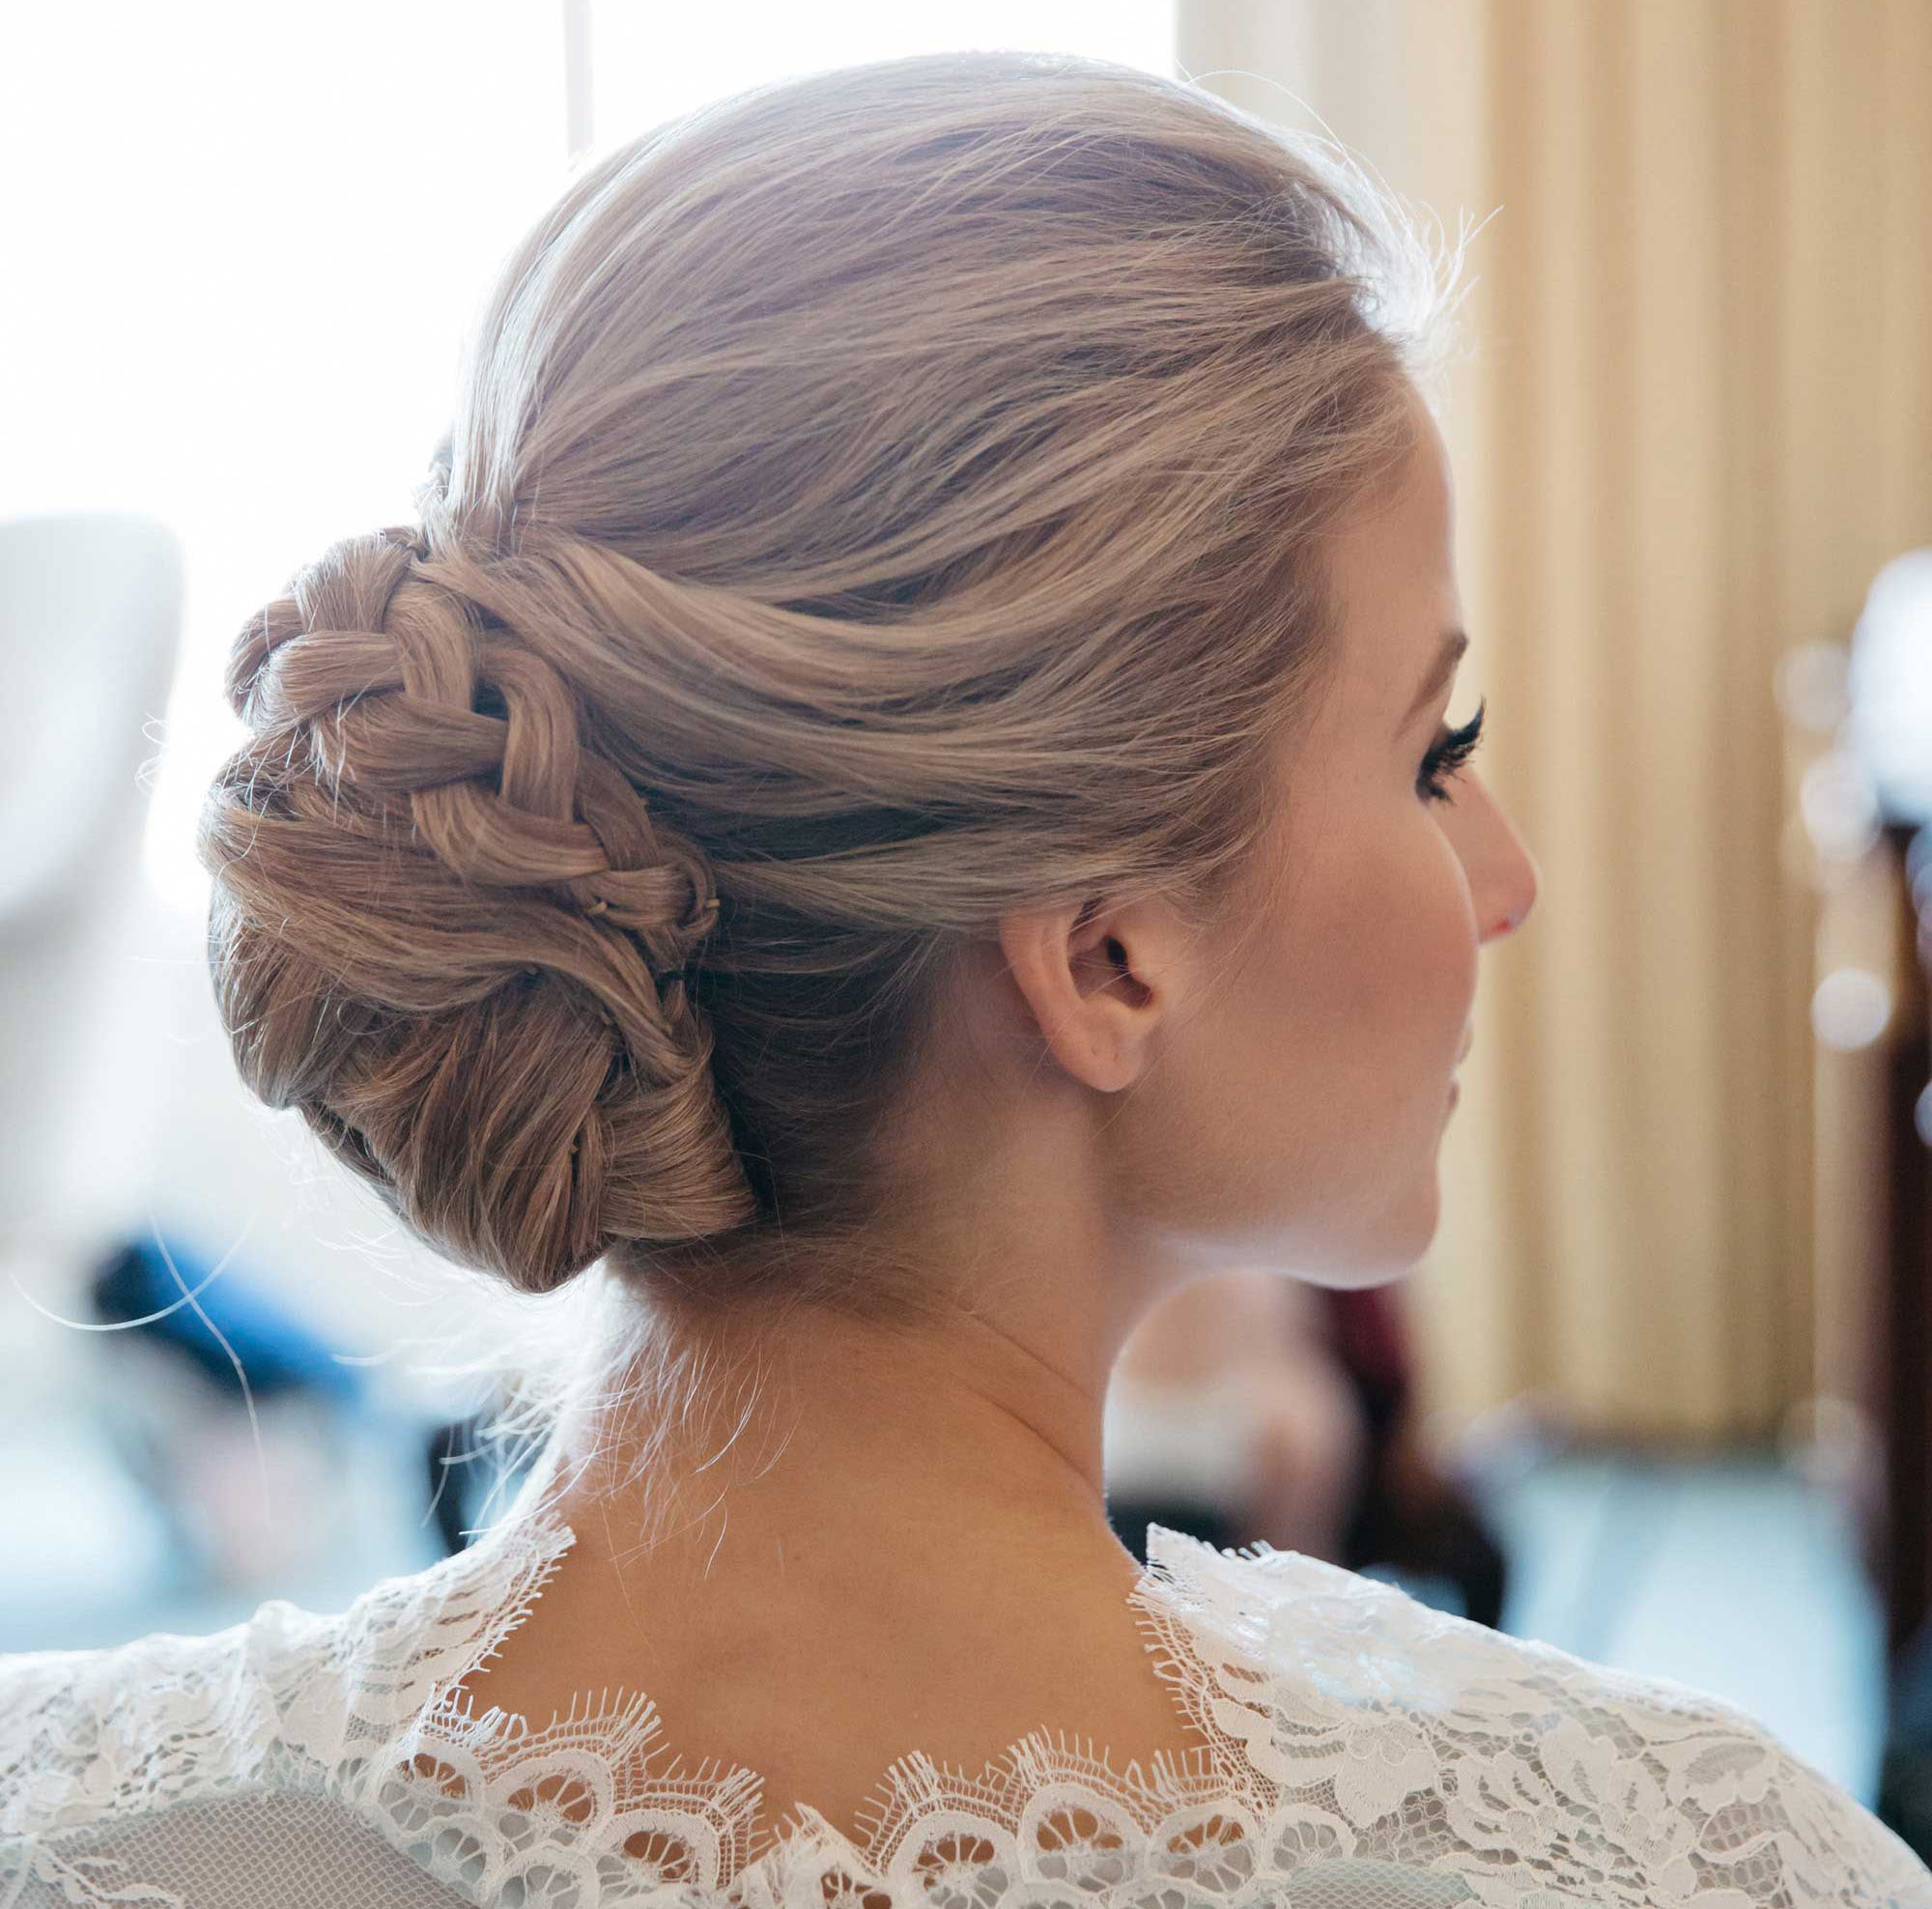 Wedding Hairstyle For Bride: Braided Hairstyles: 5 Ideas For Your Wedding Look